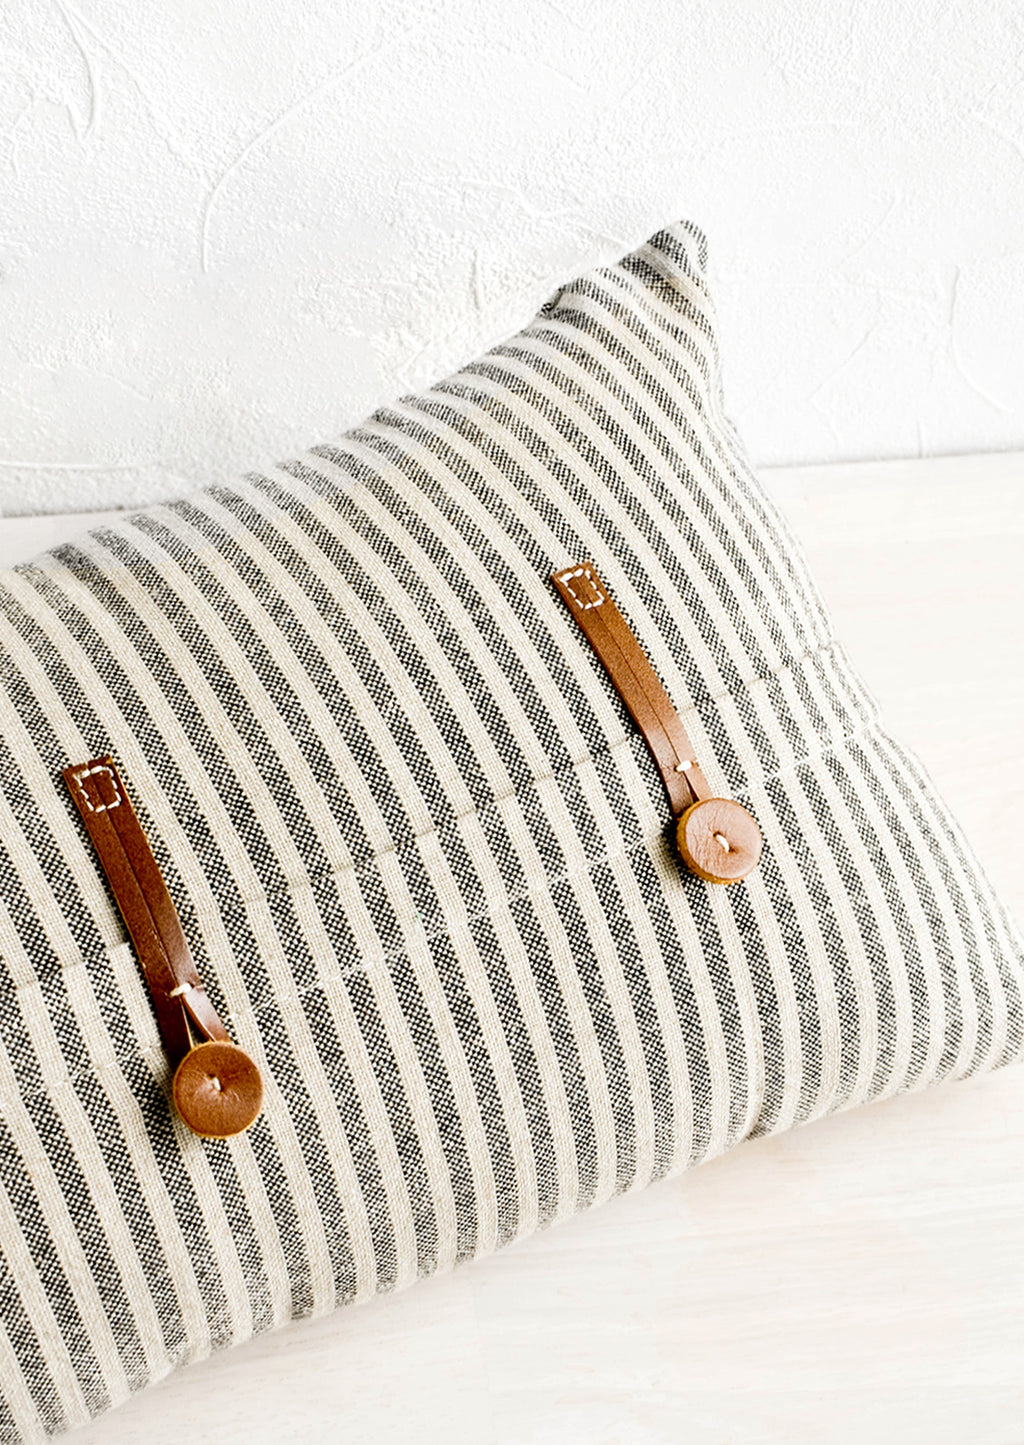 1: Striped cotton pillow in black and beige with decorative leather button detailing